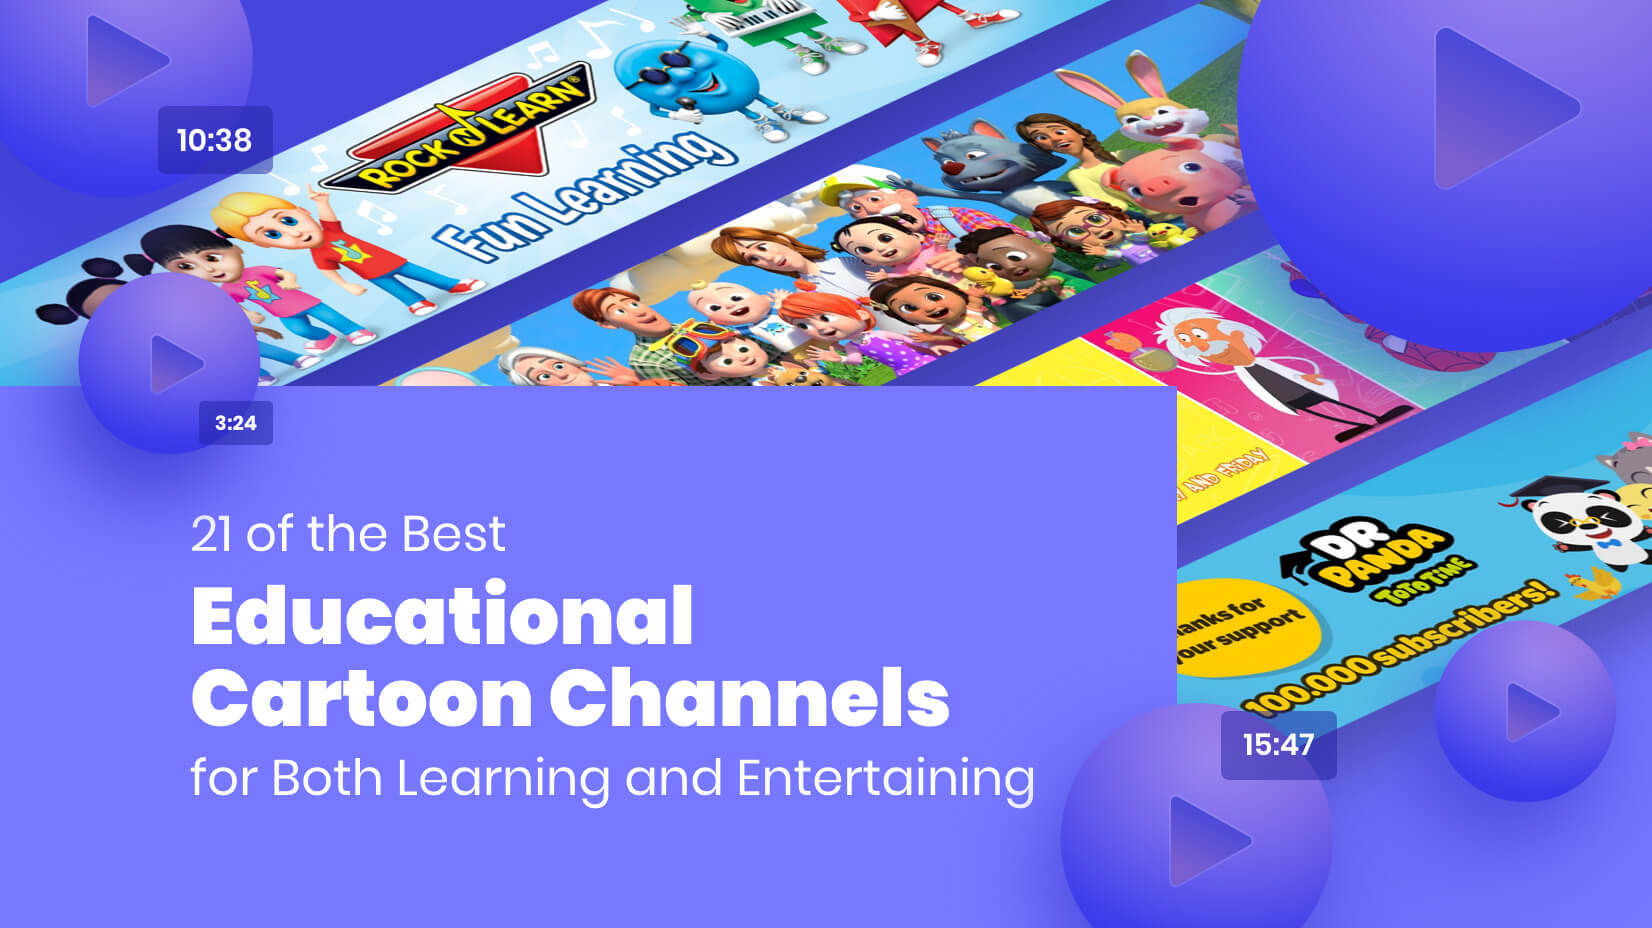 21 Of The Best Educational Cartoon Channels For Learning And Entertaining